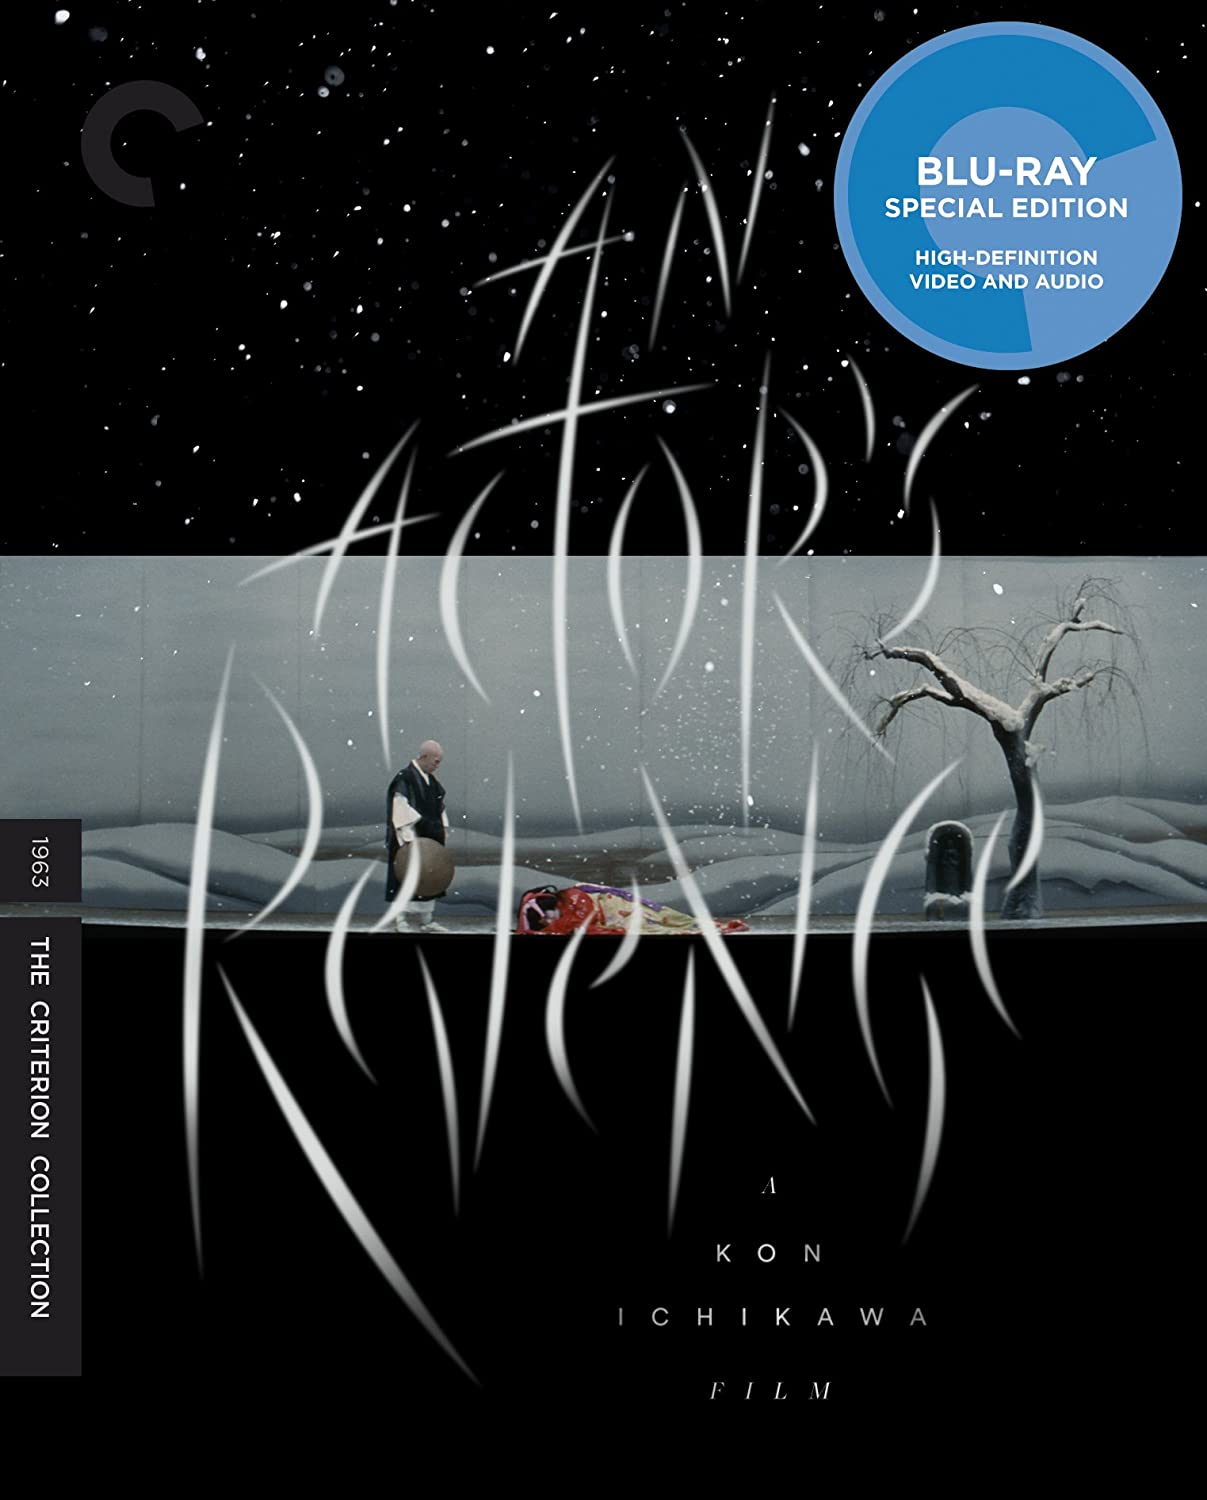 An Actor's Revenge The Criterion Collection